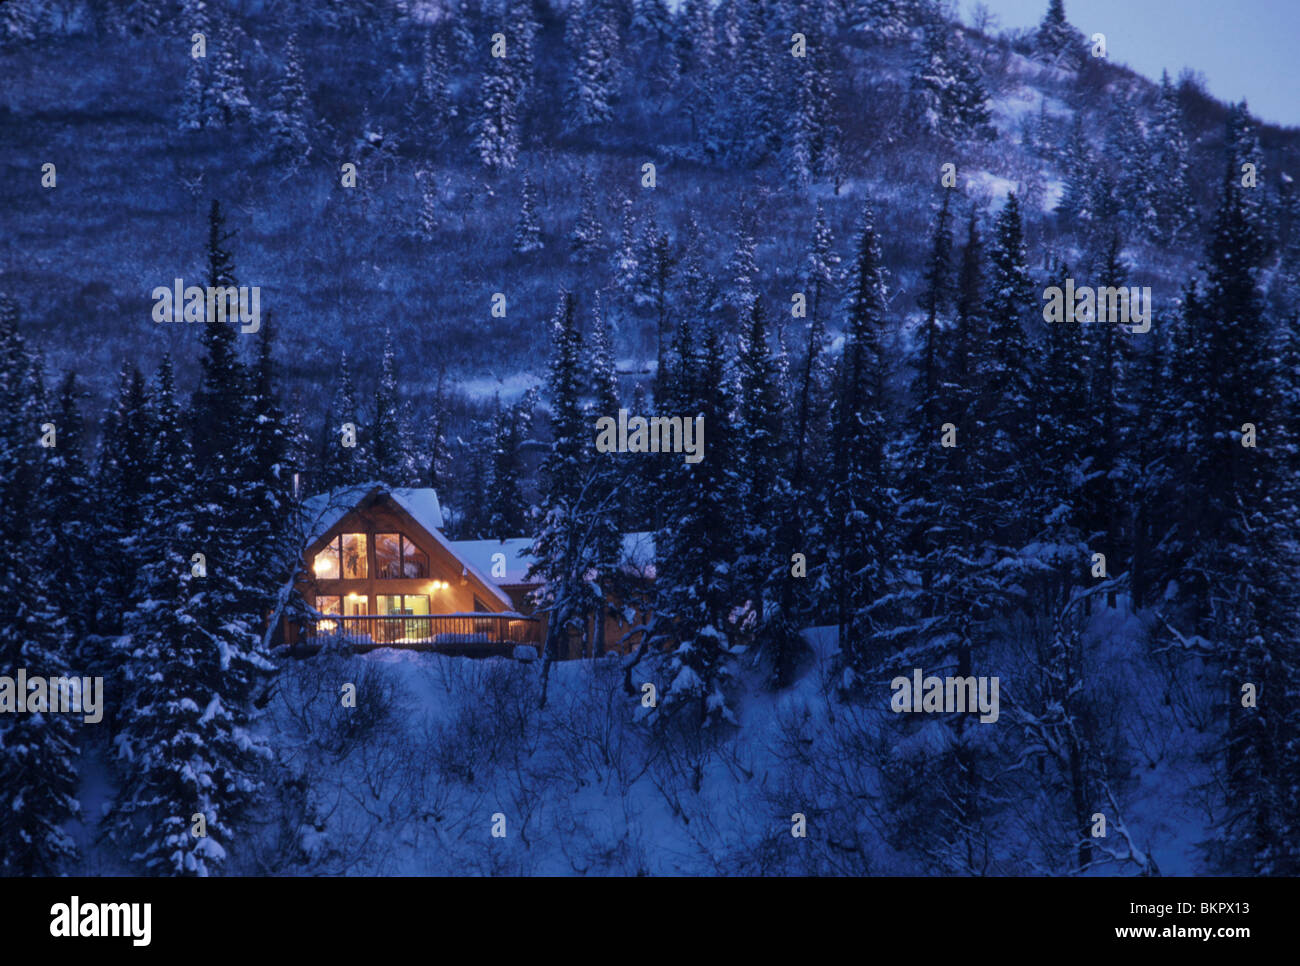 Snow Falling Live Wallpaper Download Home Cabin In Snow Covered Forest Lights On Dusk Sc Ak